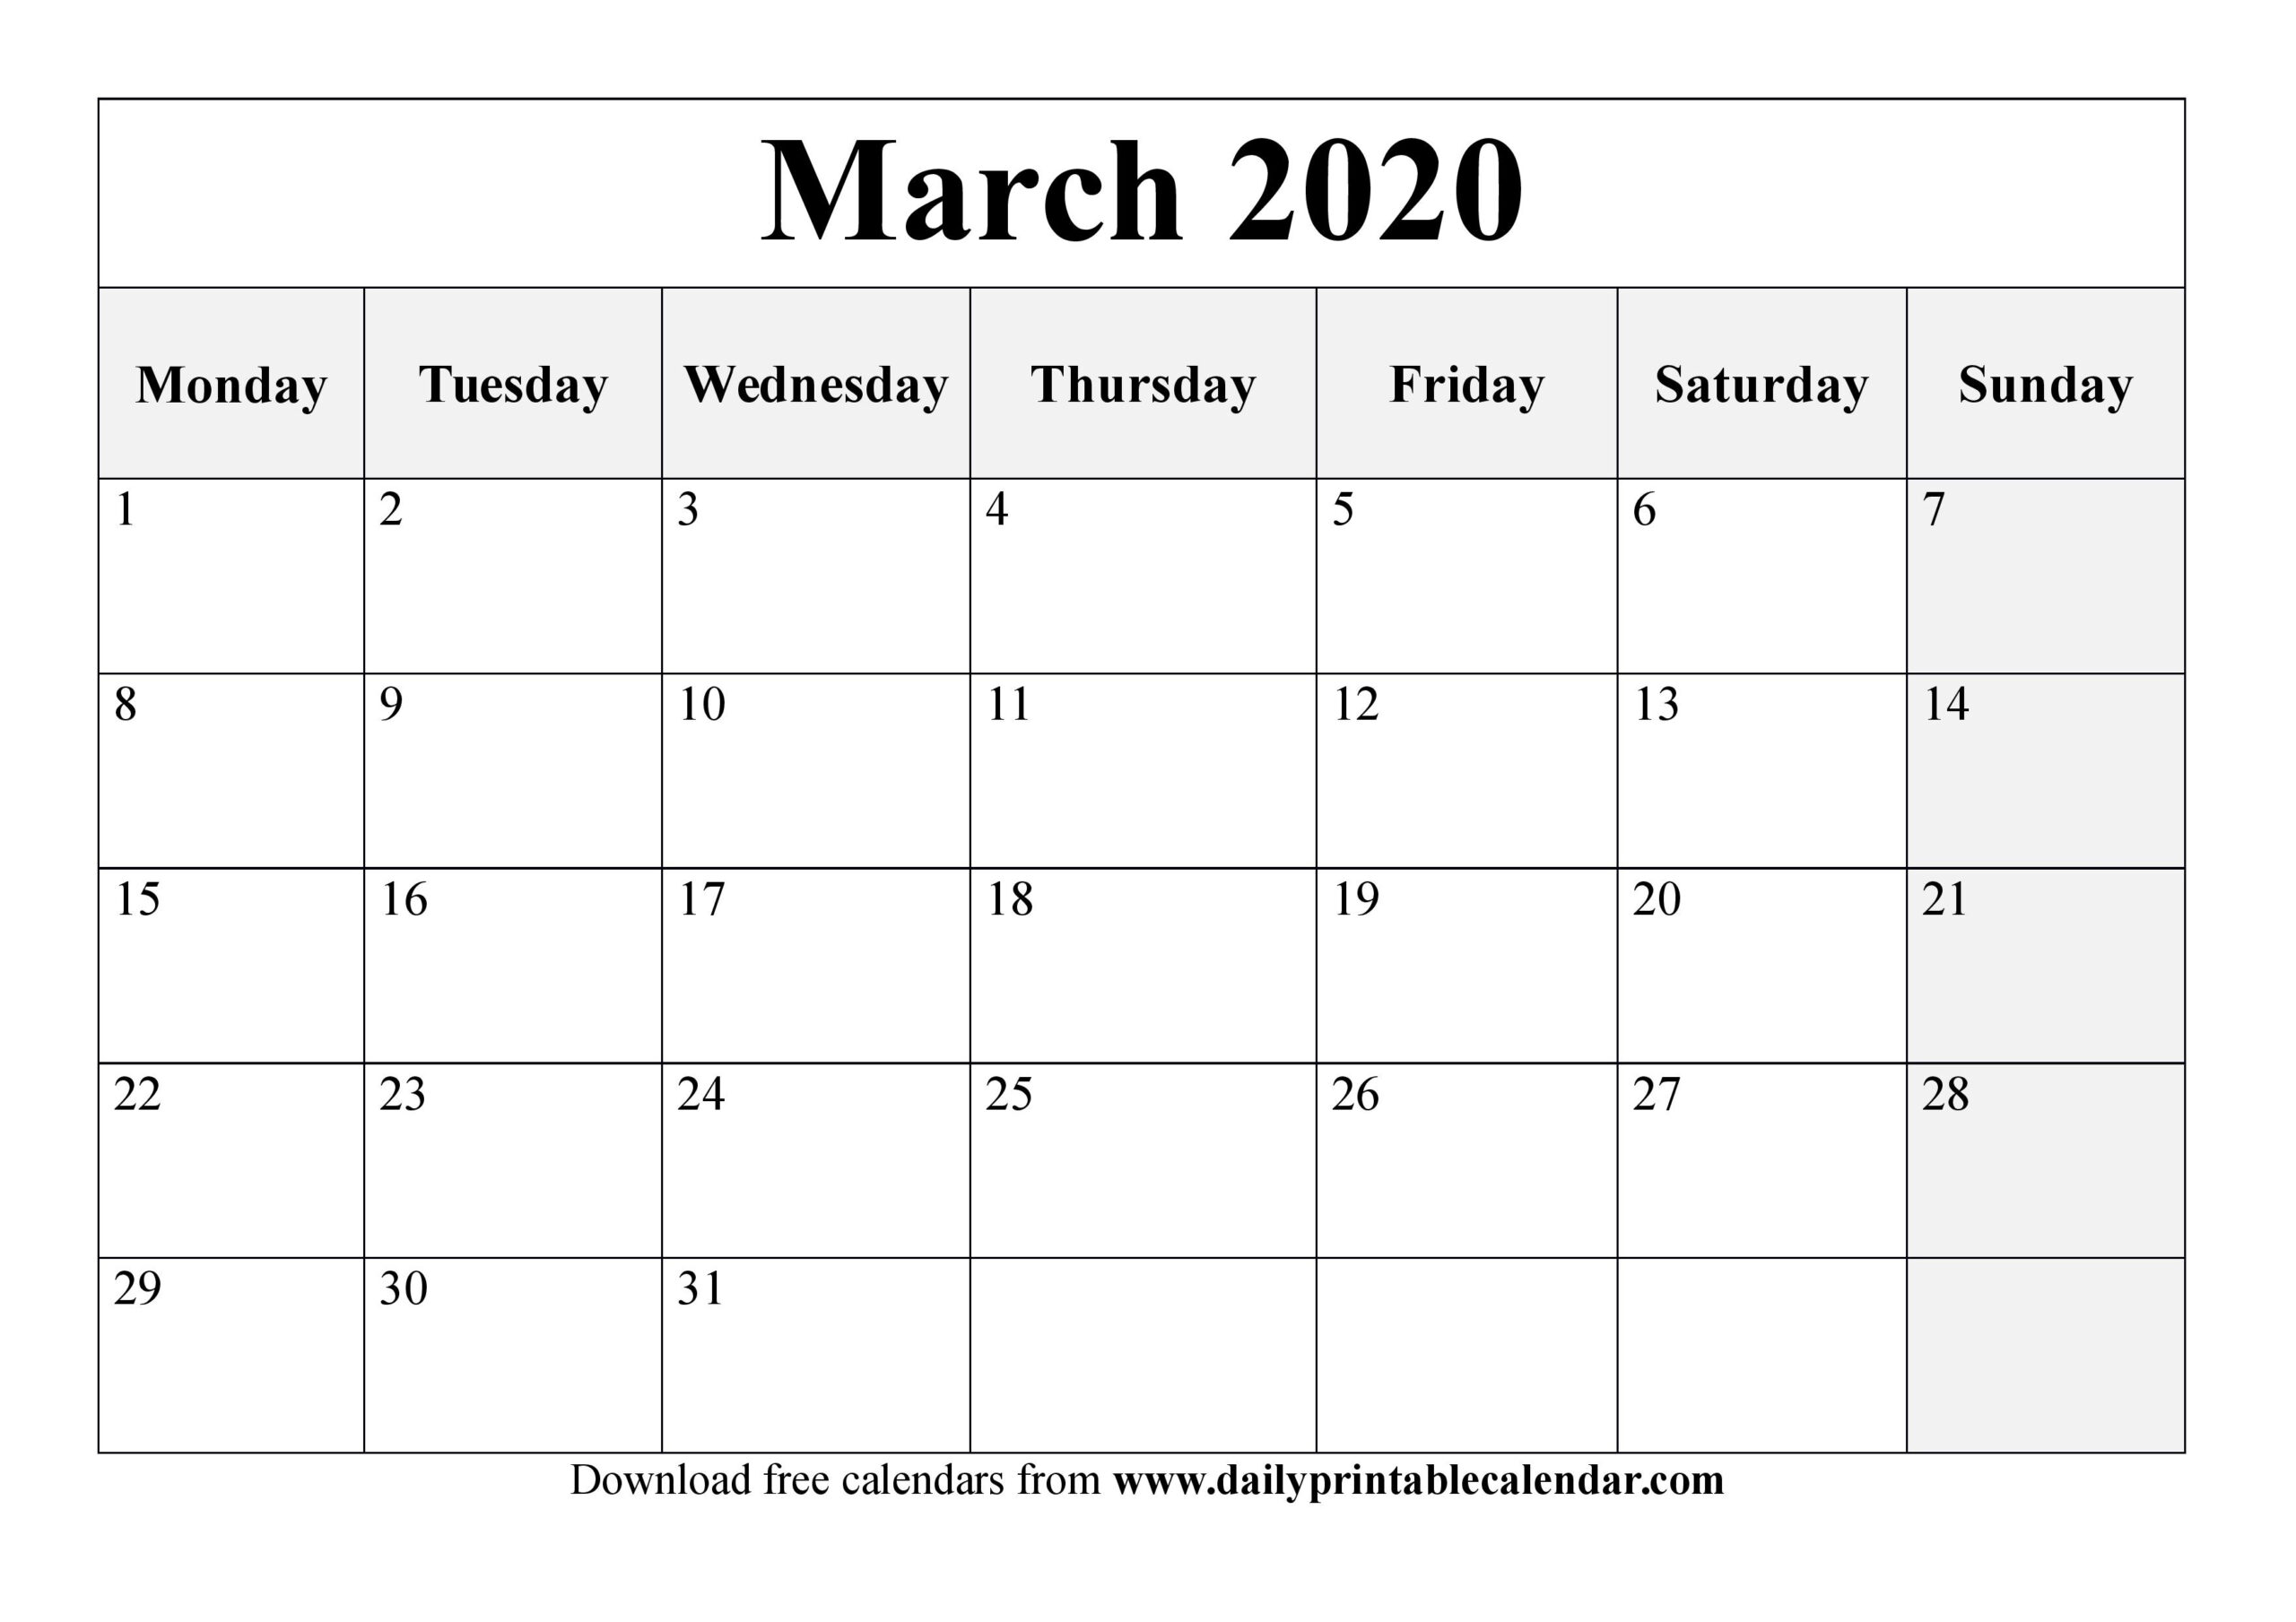 Free March 2020 Printable Calendar - Blank Templates